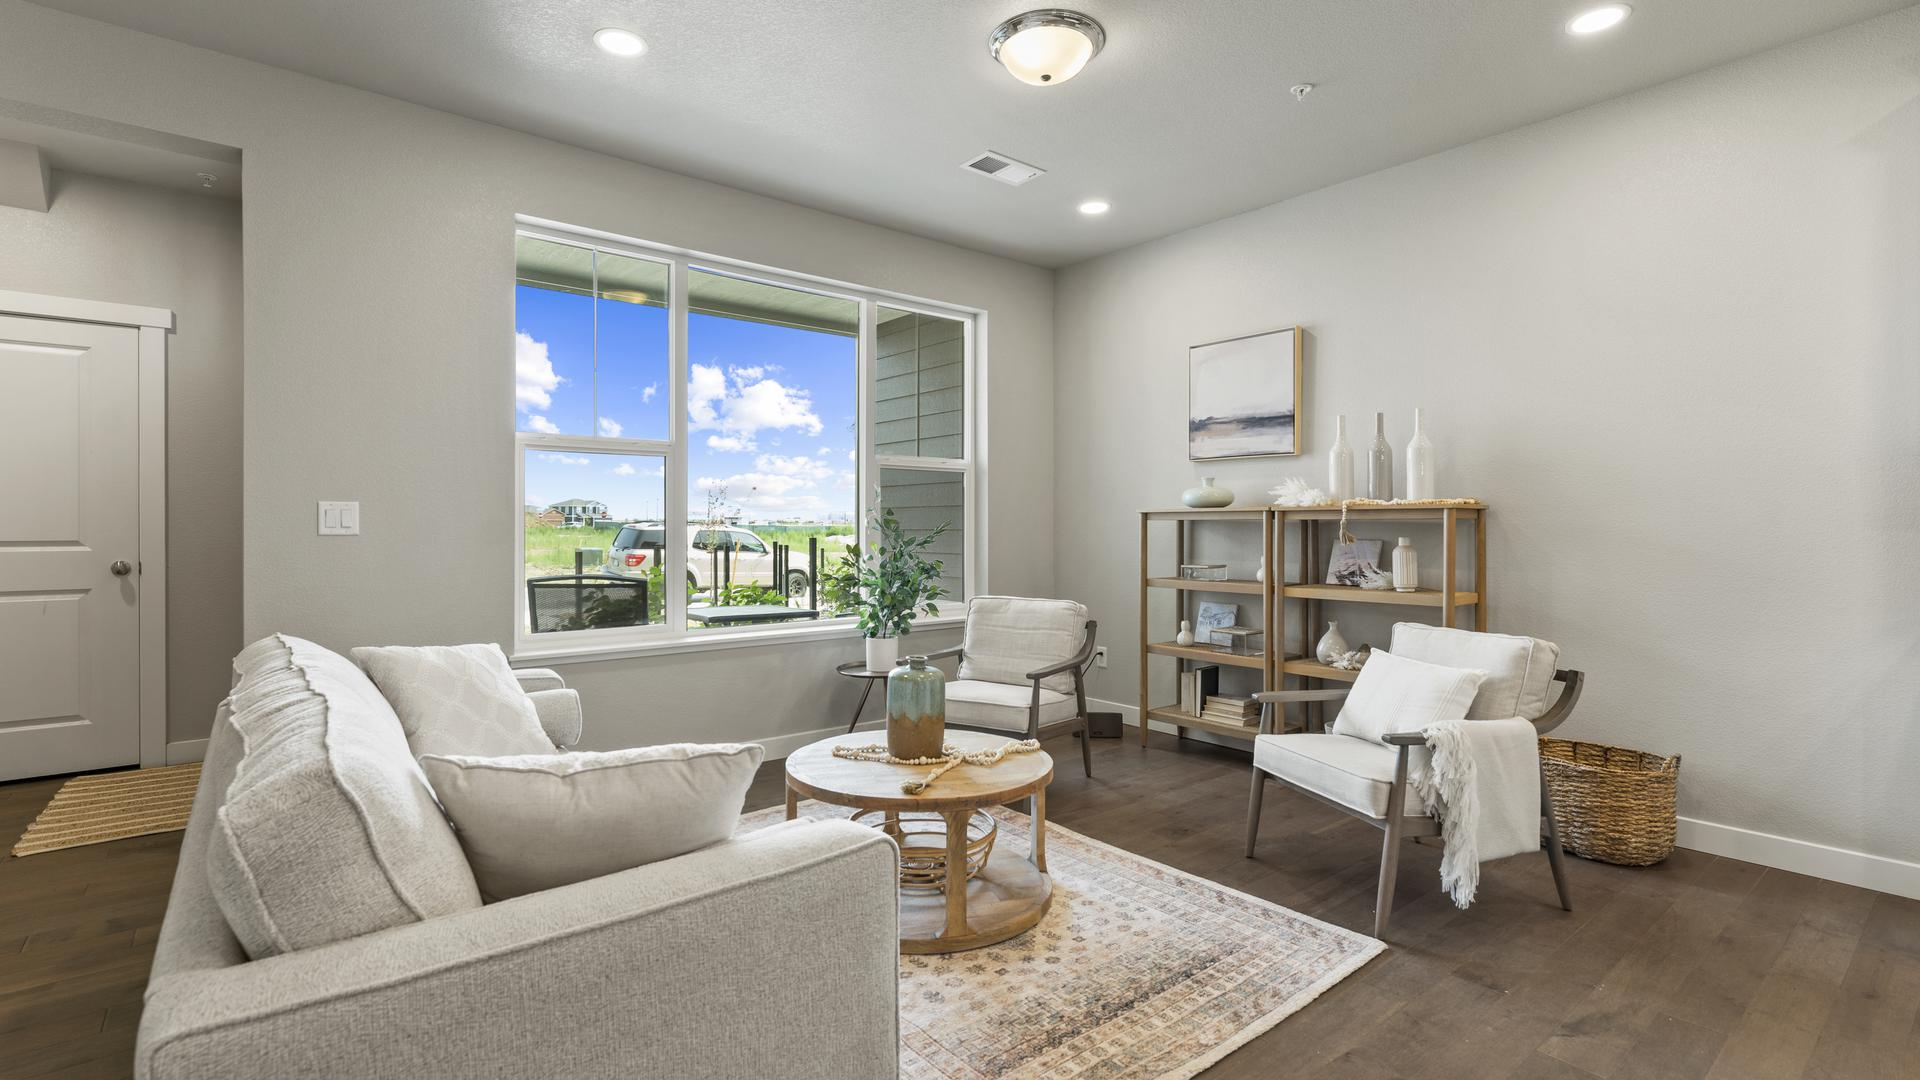 Living Room - Not Actual Home - Finishes Will Vary